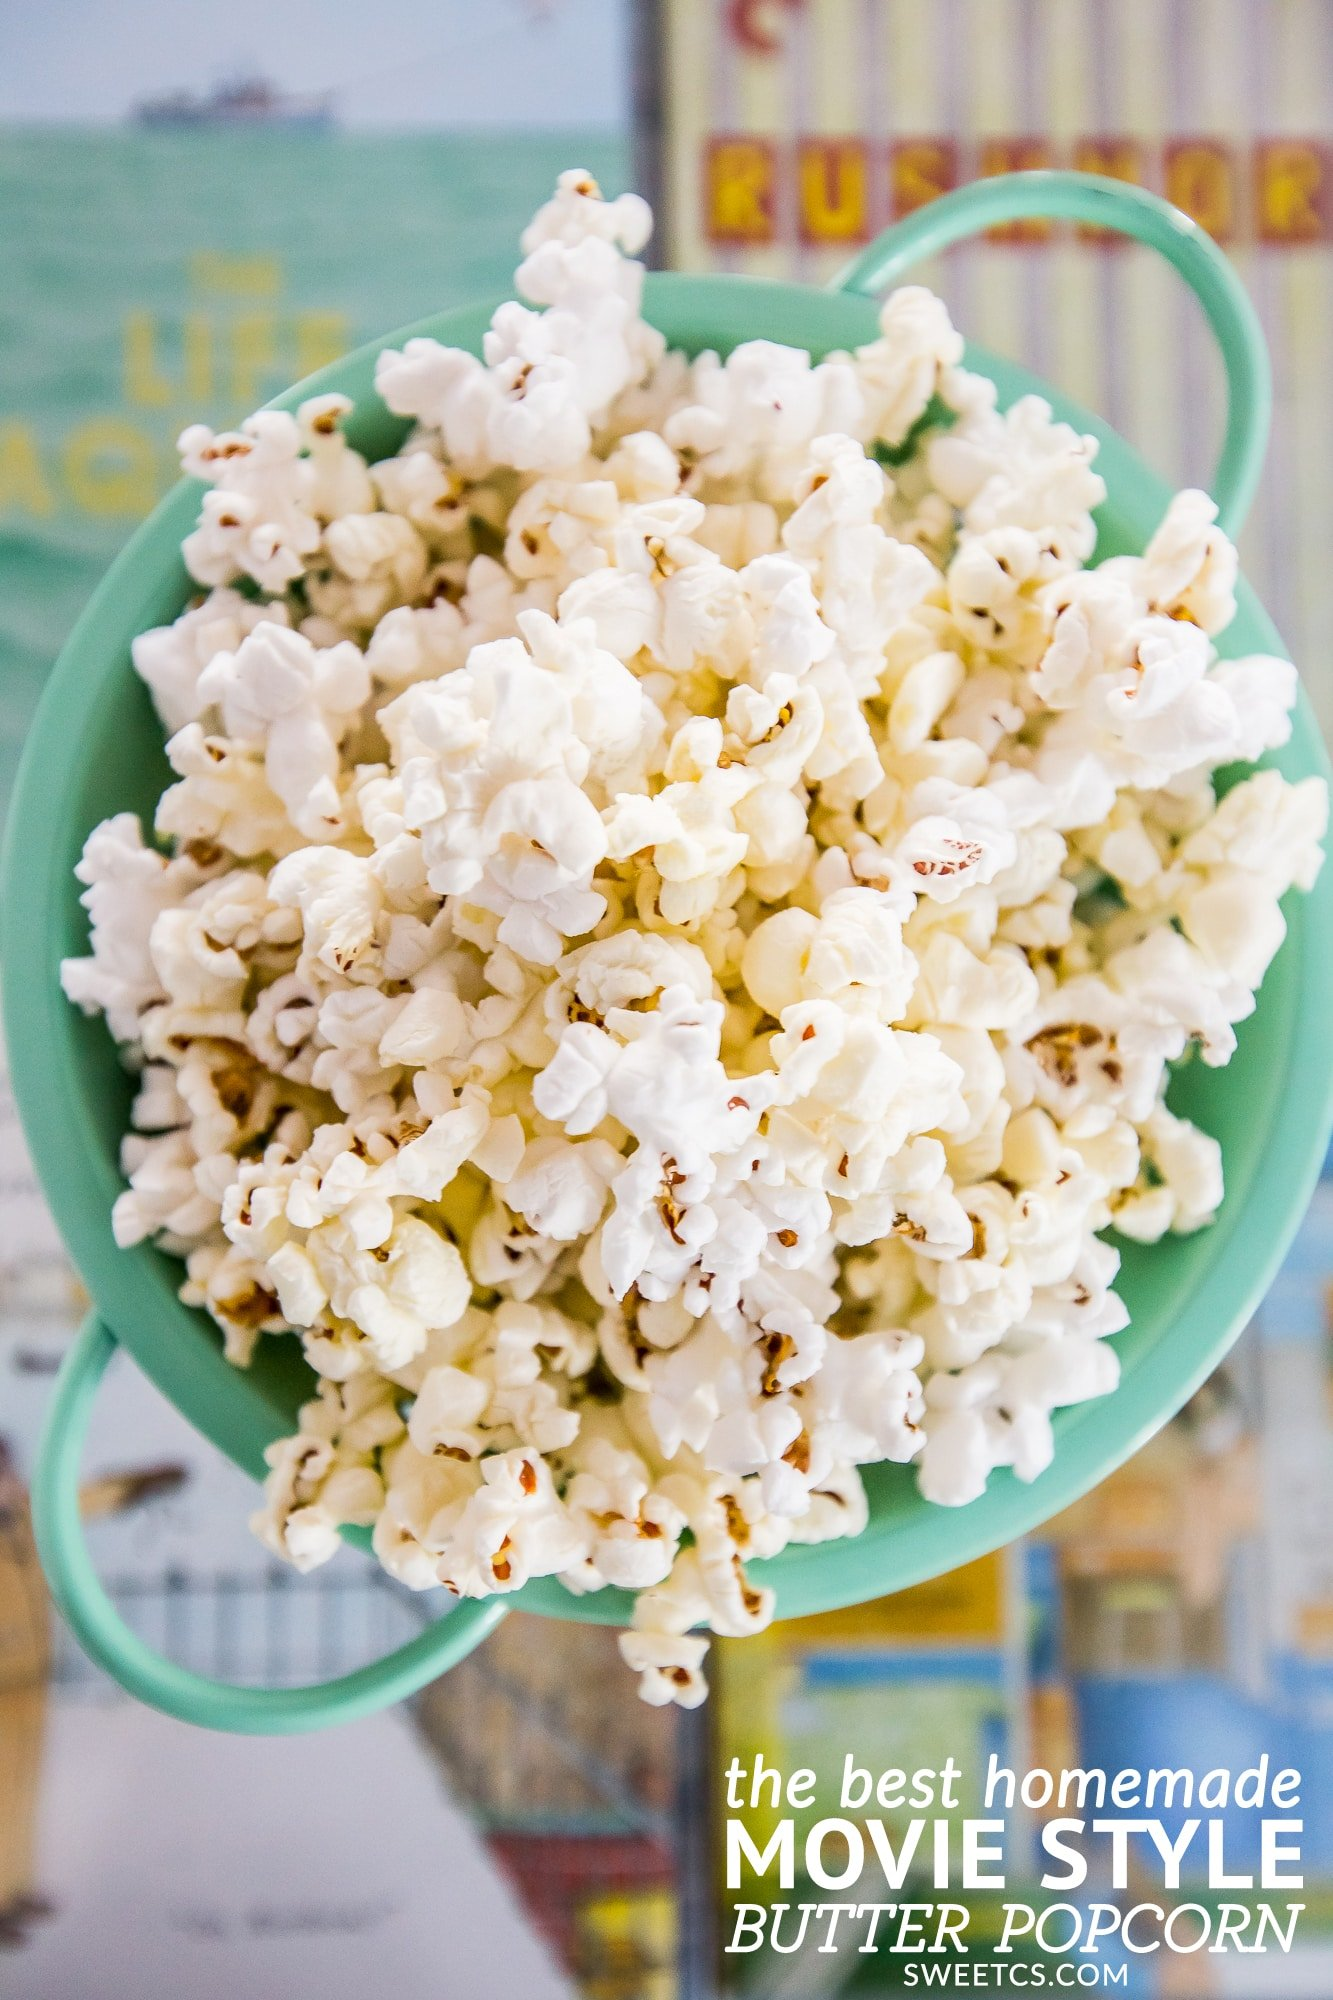 The best homemade butter popcorn- tastes just like the movies with no fake stuff!